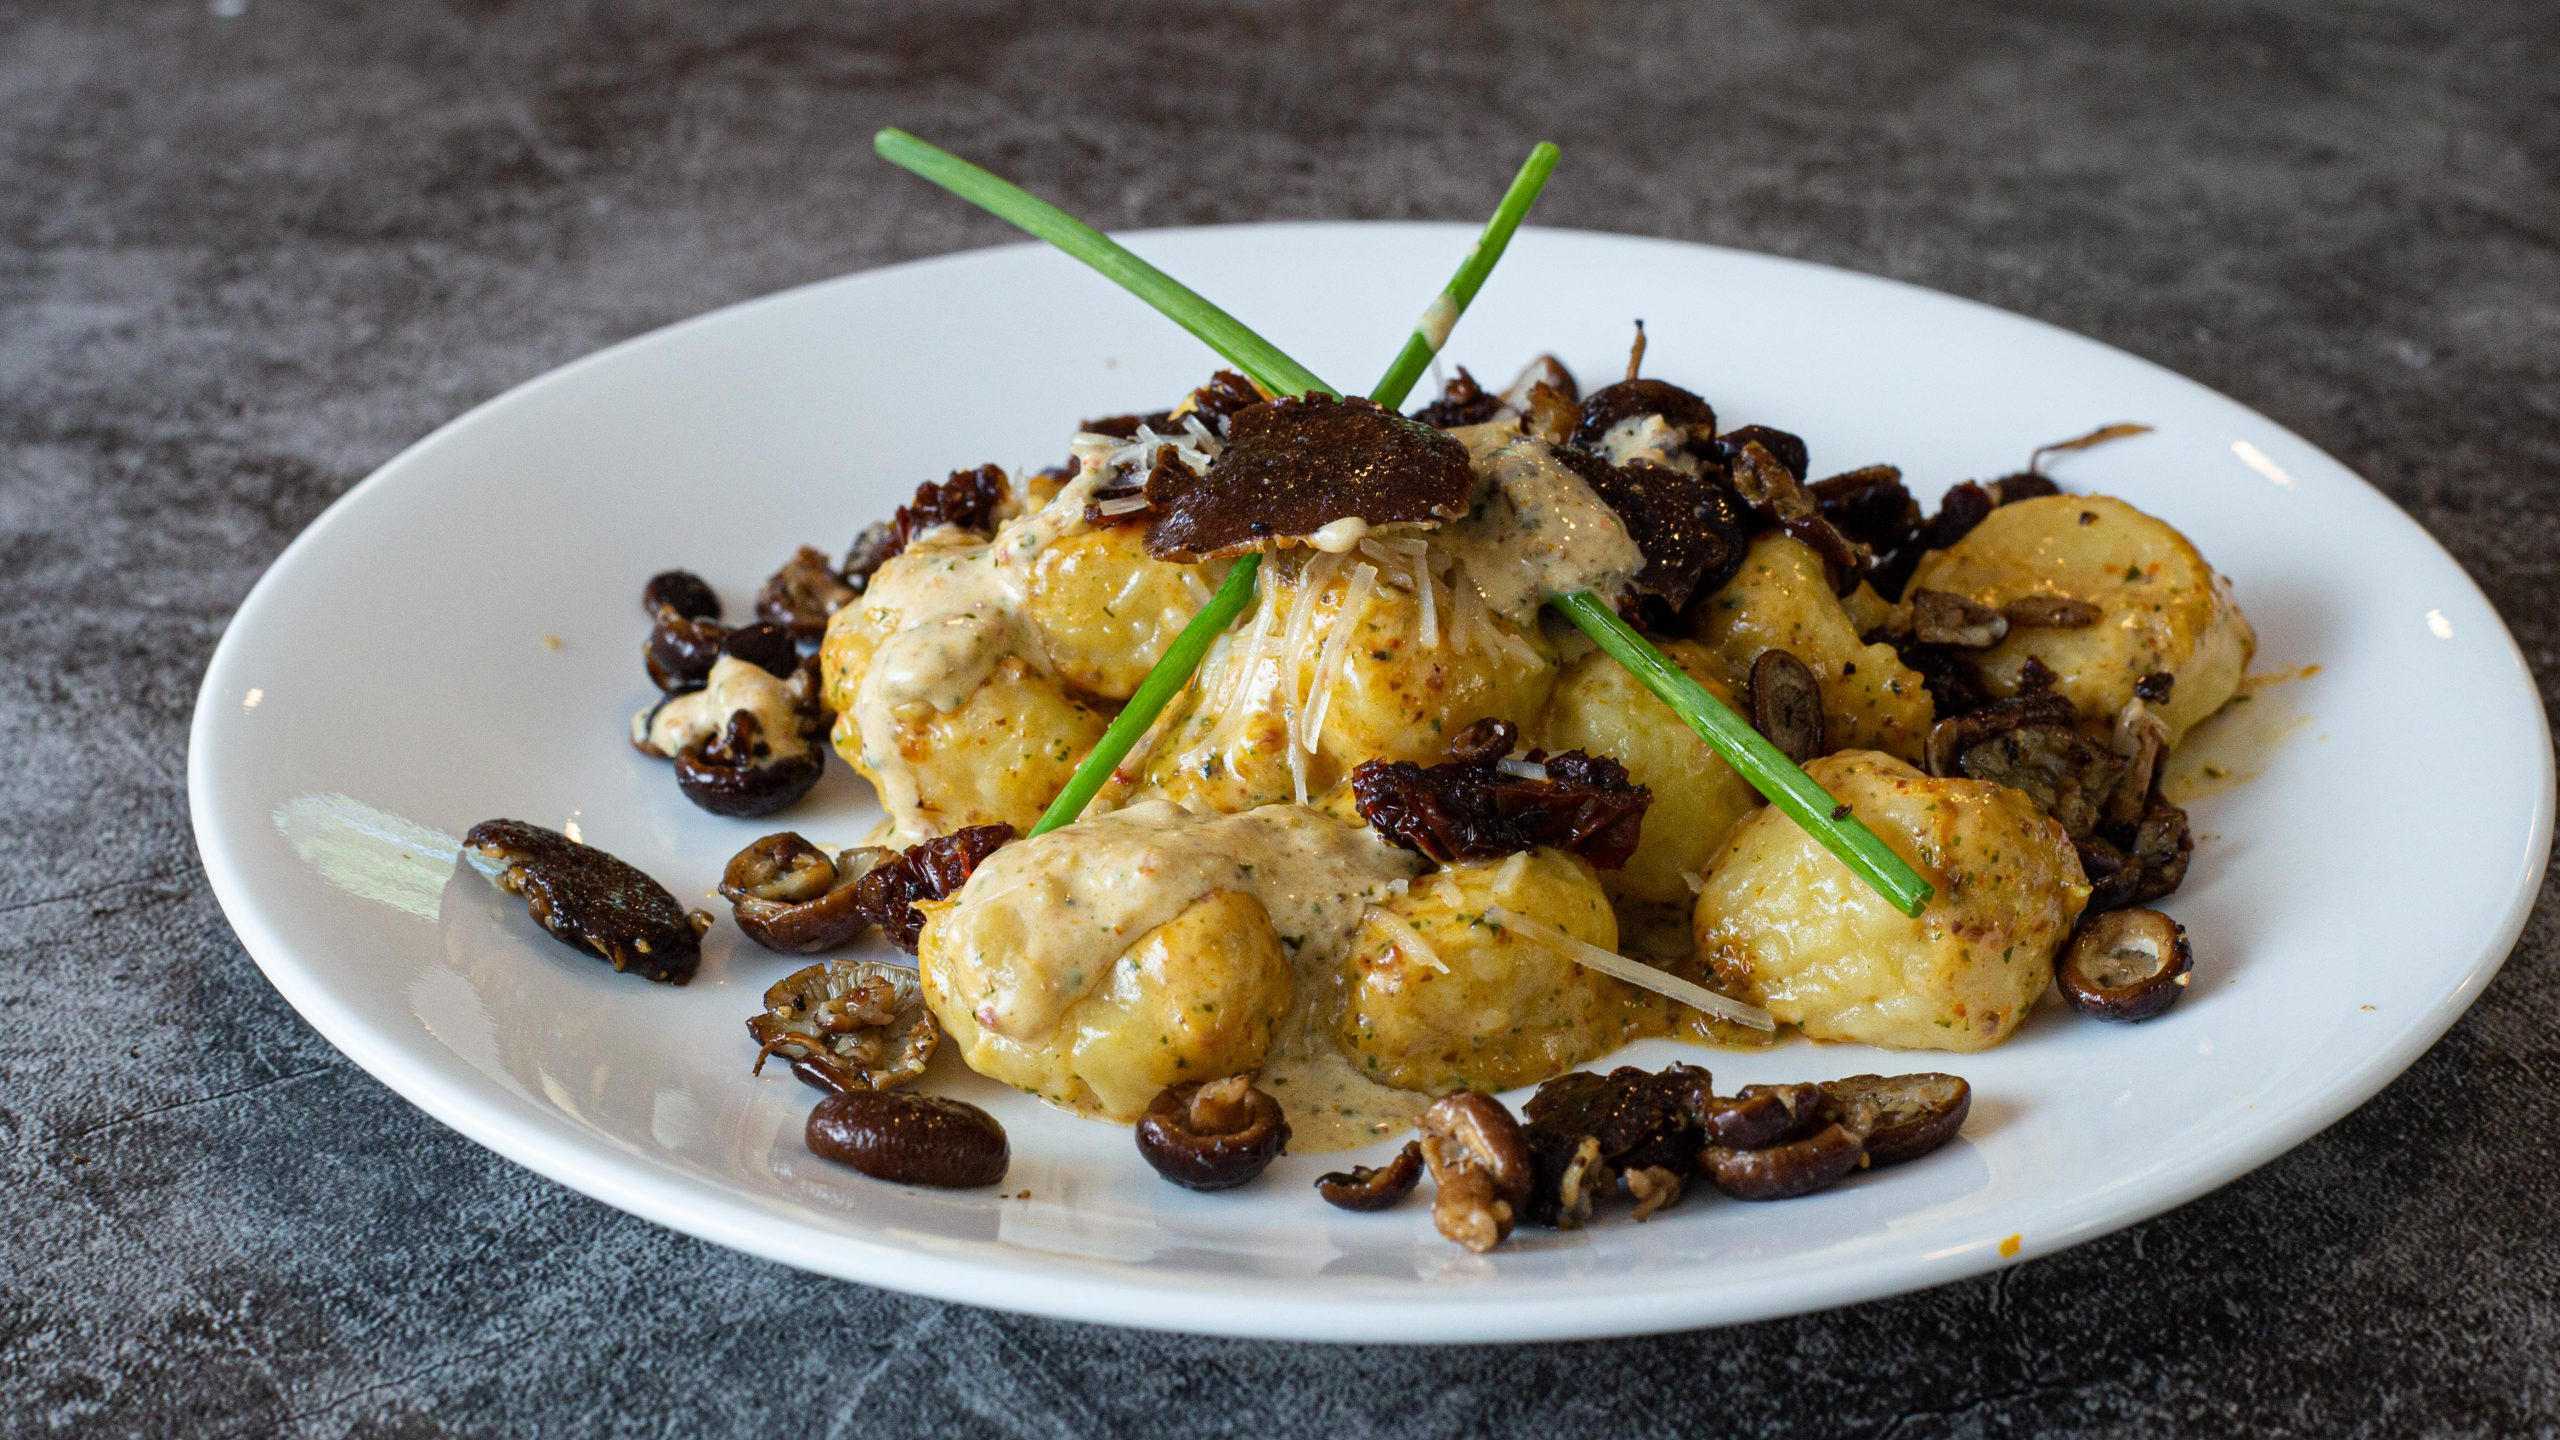 Gnocchi with a sun-dried tomato pesto cream sauce garnished with parmesan cheese and chives